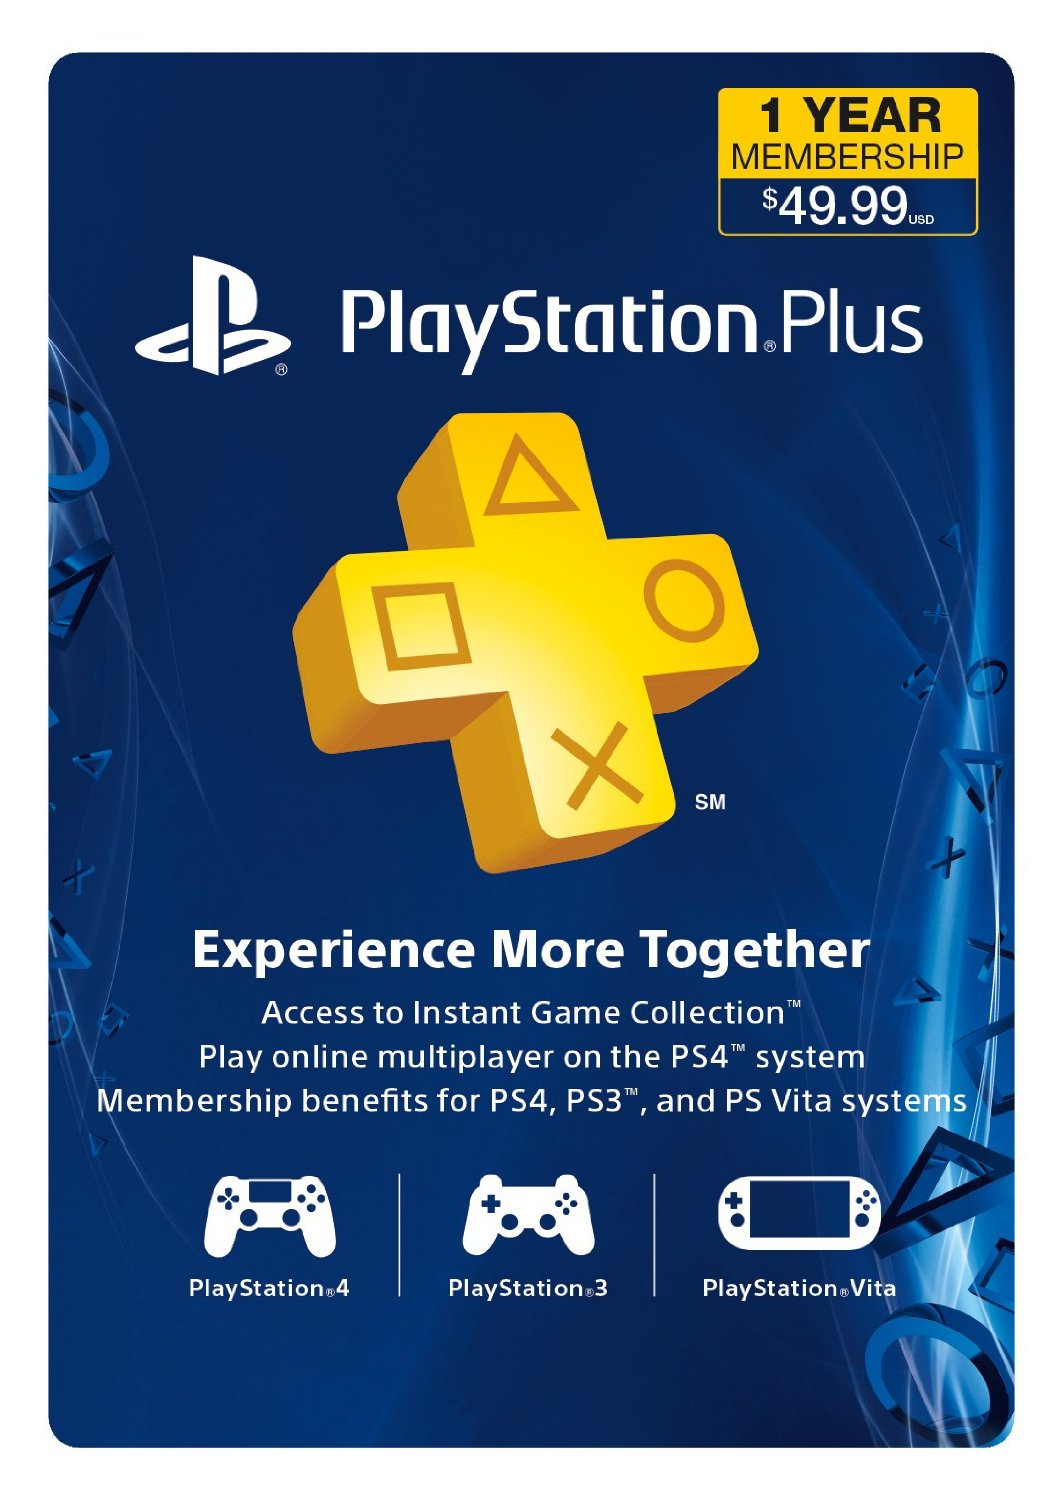 1-Year Playstation Plus Subscription